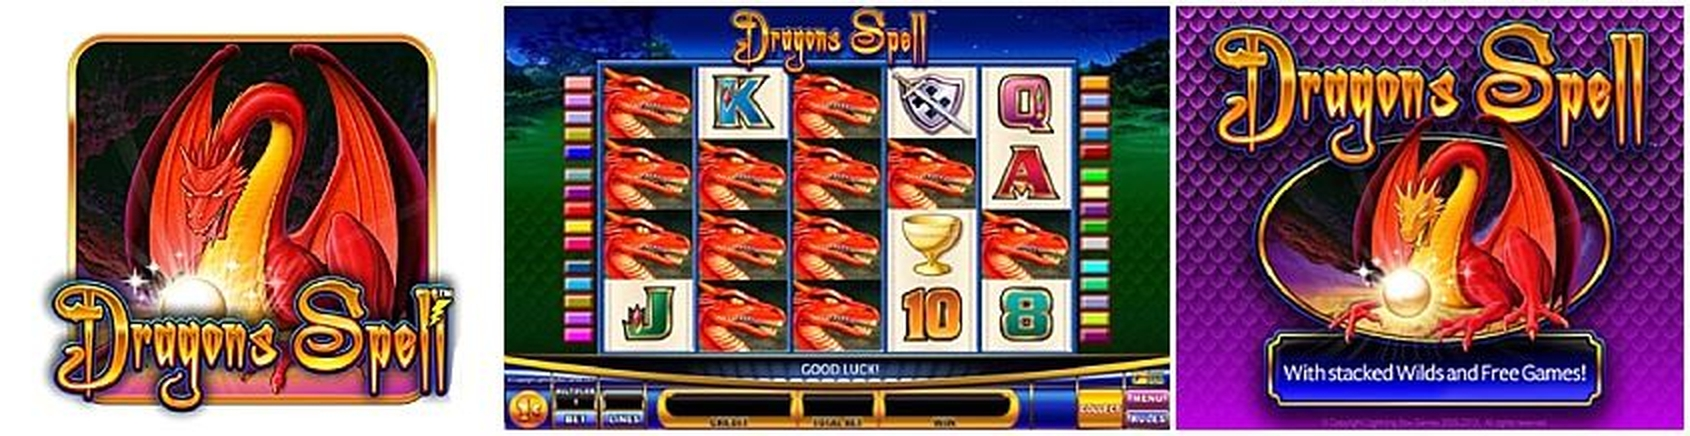 The Dragons Spell Online Slot Demo Game by Lightning Box